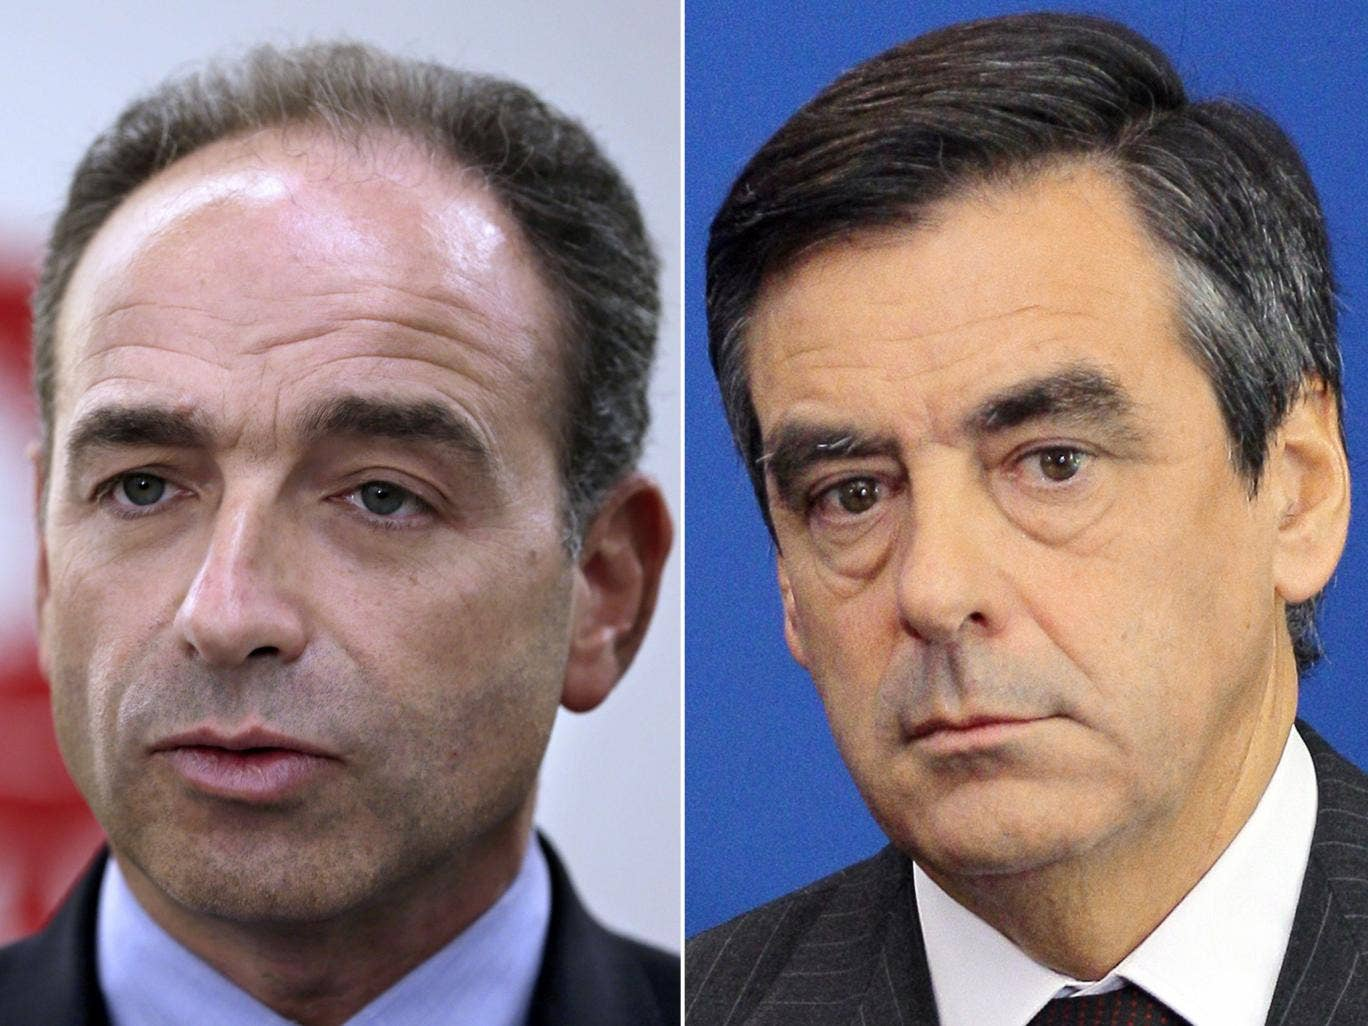 Newly-elected President of the right-wing UMP opposition party, Jean-Francois Cope(l), who beat former Prime Minister, Francois Fillon (r) in a shambolic battle to lead France's right-wing opposition.